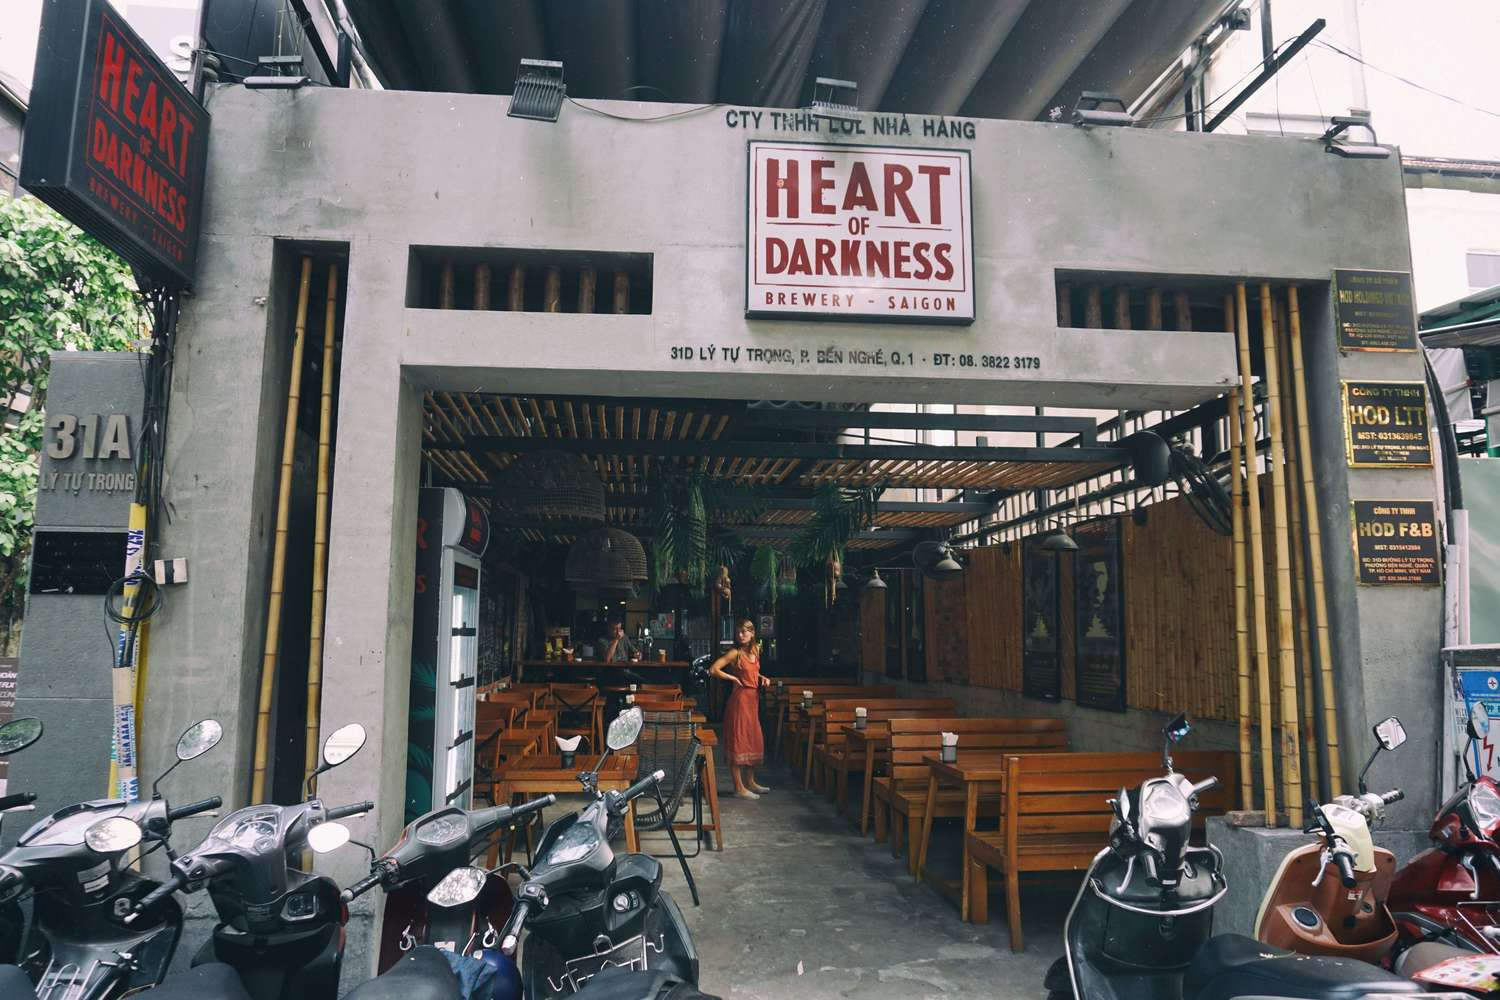 Heart of Darkness brewery in Saigon